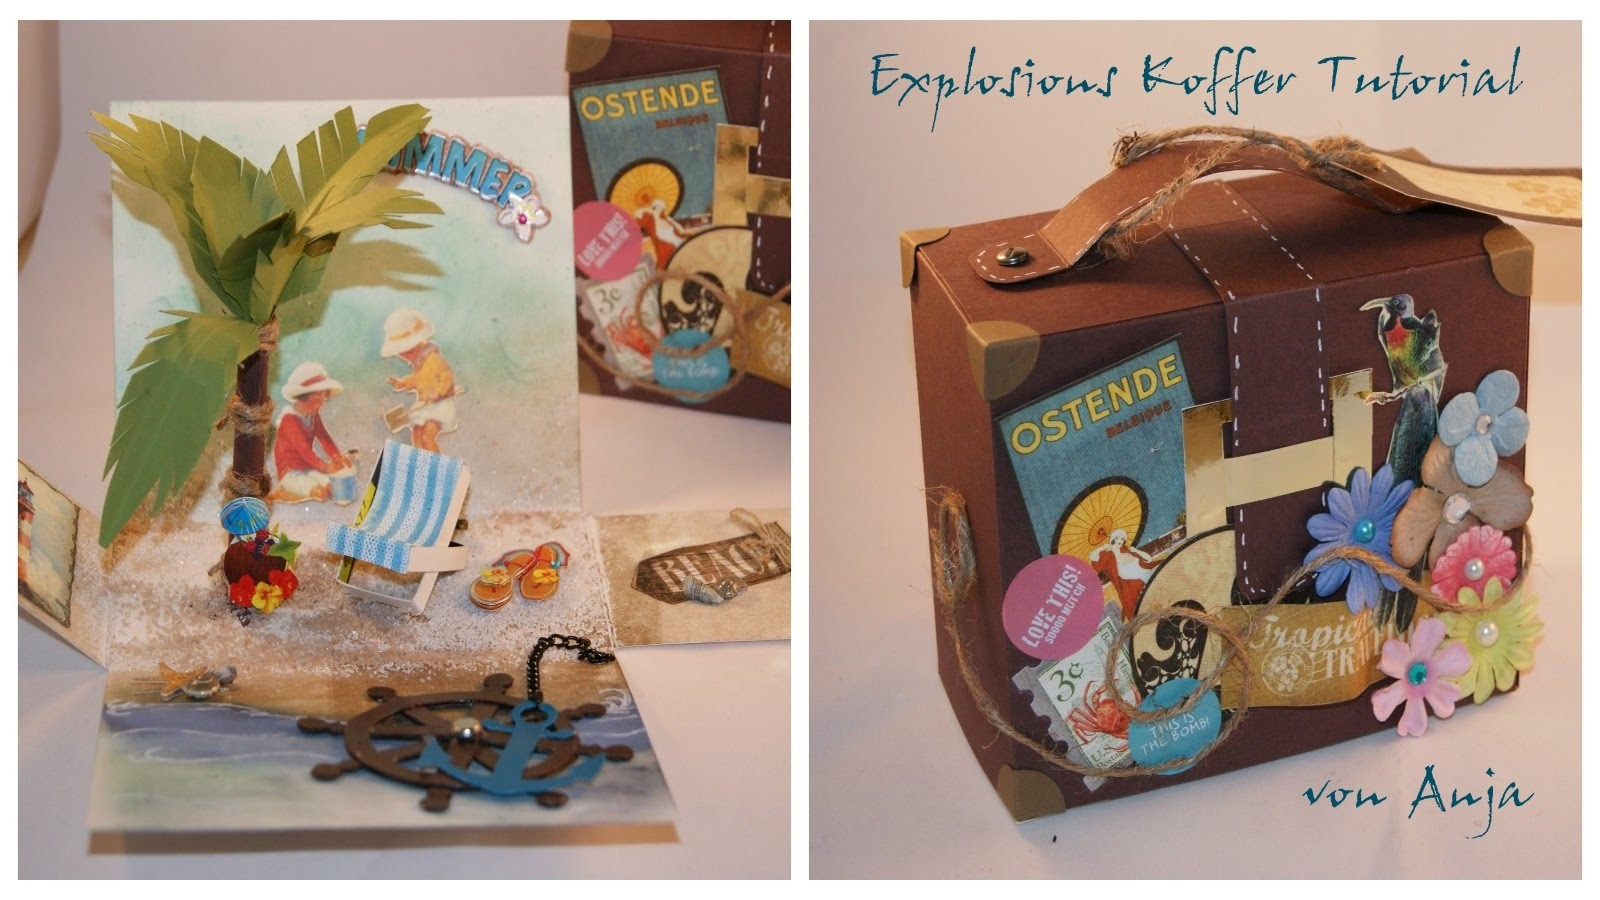 Explosionskoffer Tutorial (*KoOp*DIY*Craft*)